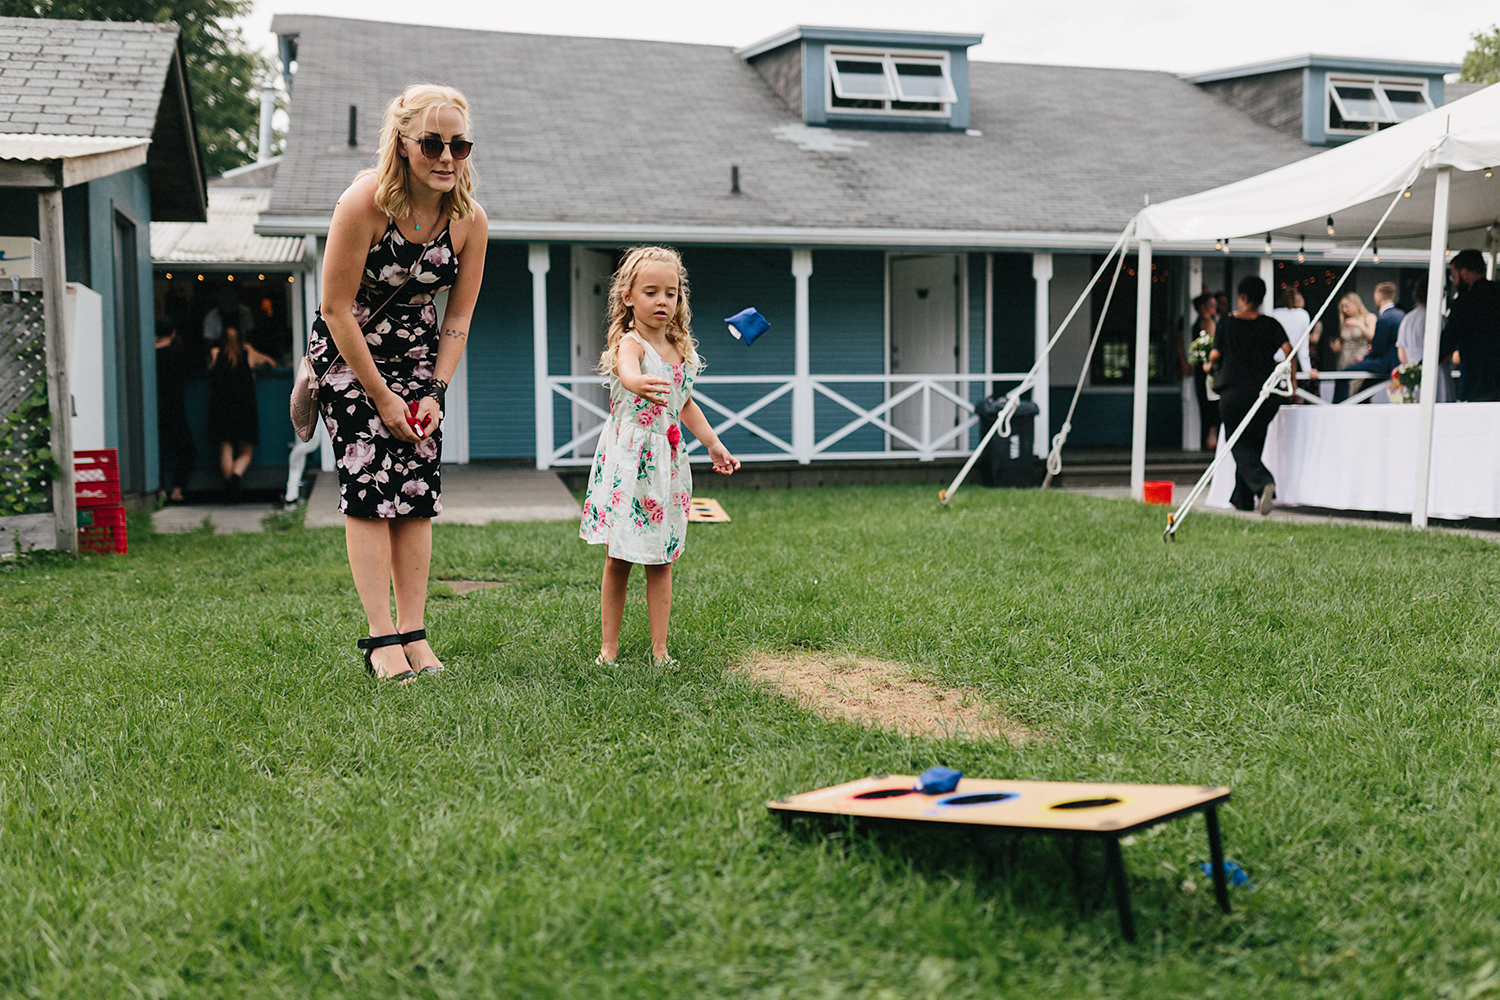 Toronto-Island-Wedding-Toronto-Best-Film-Wedding-Photographers-3b-photography-analog-photography-wards-island-clubhouse-junebug-weddings-vintage-venue-reception-cocktail-hour-candid-guests-mingling-girl-playing-lawn-games-cornhole.jpg